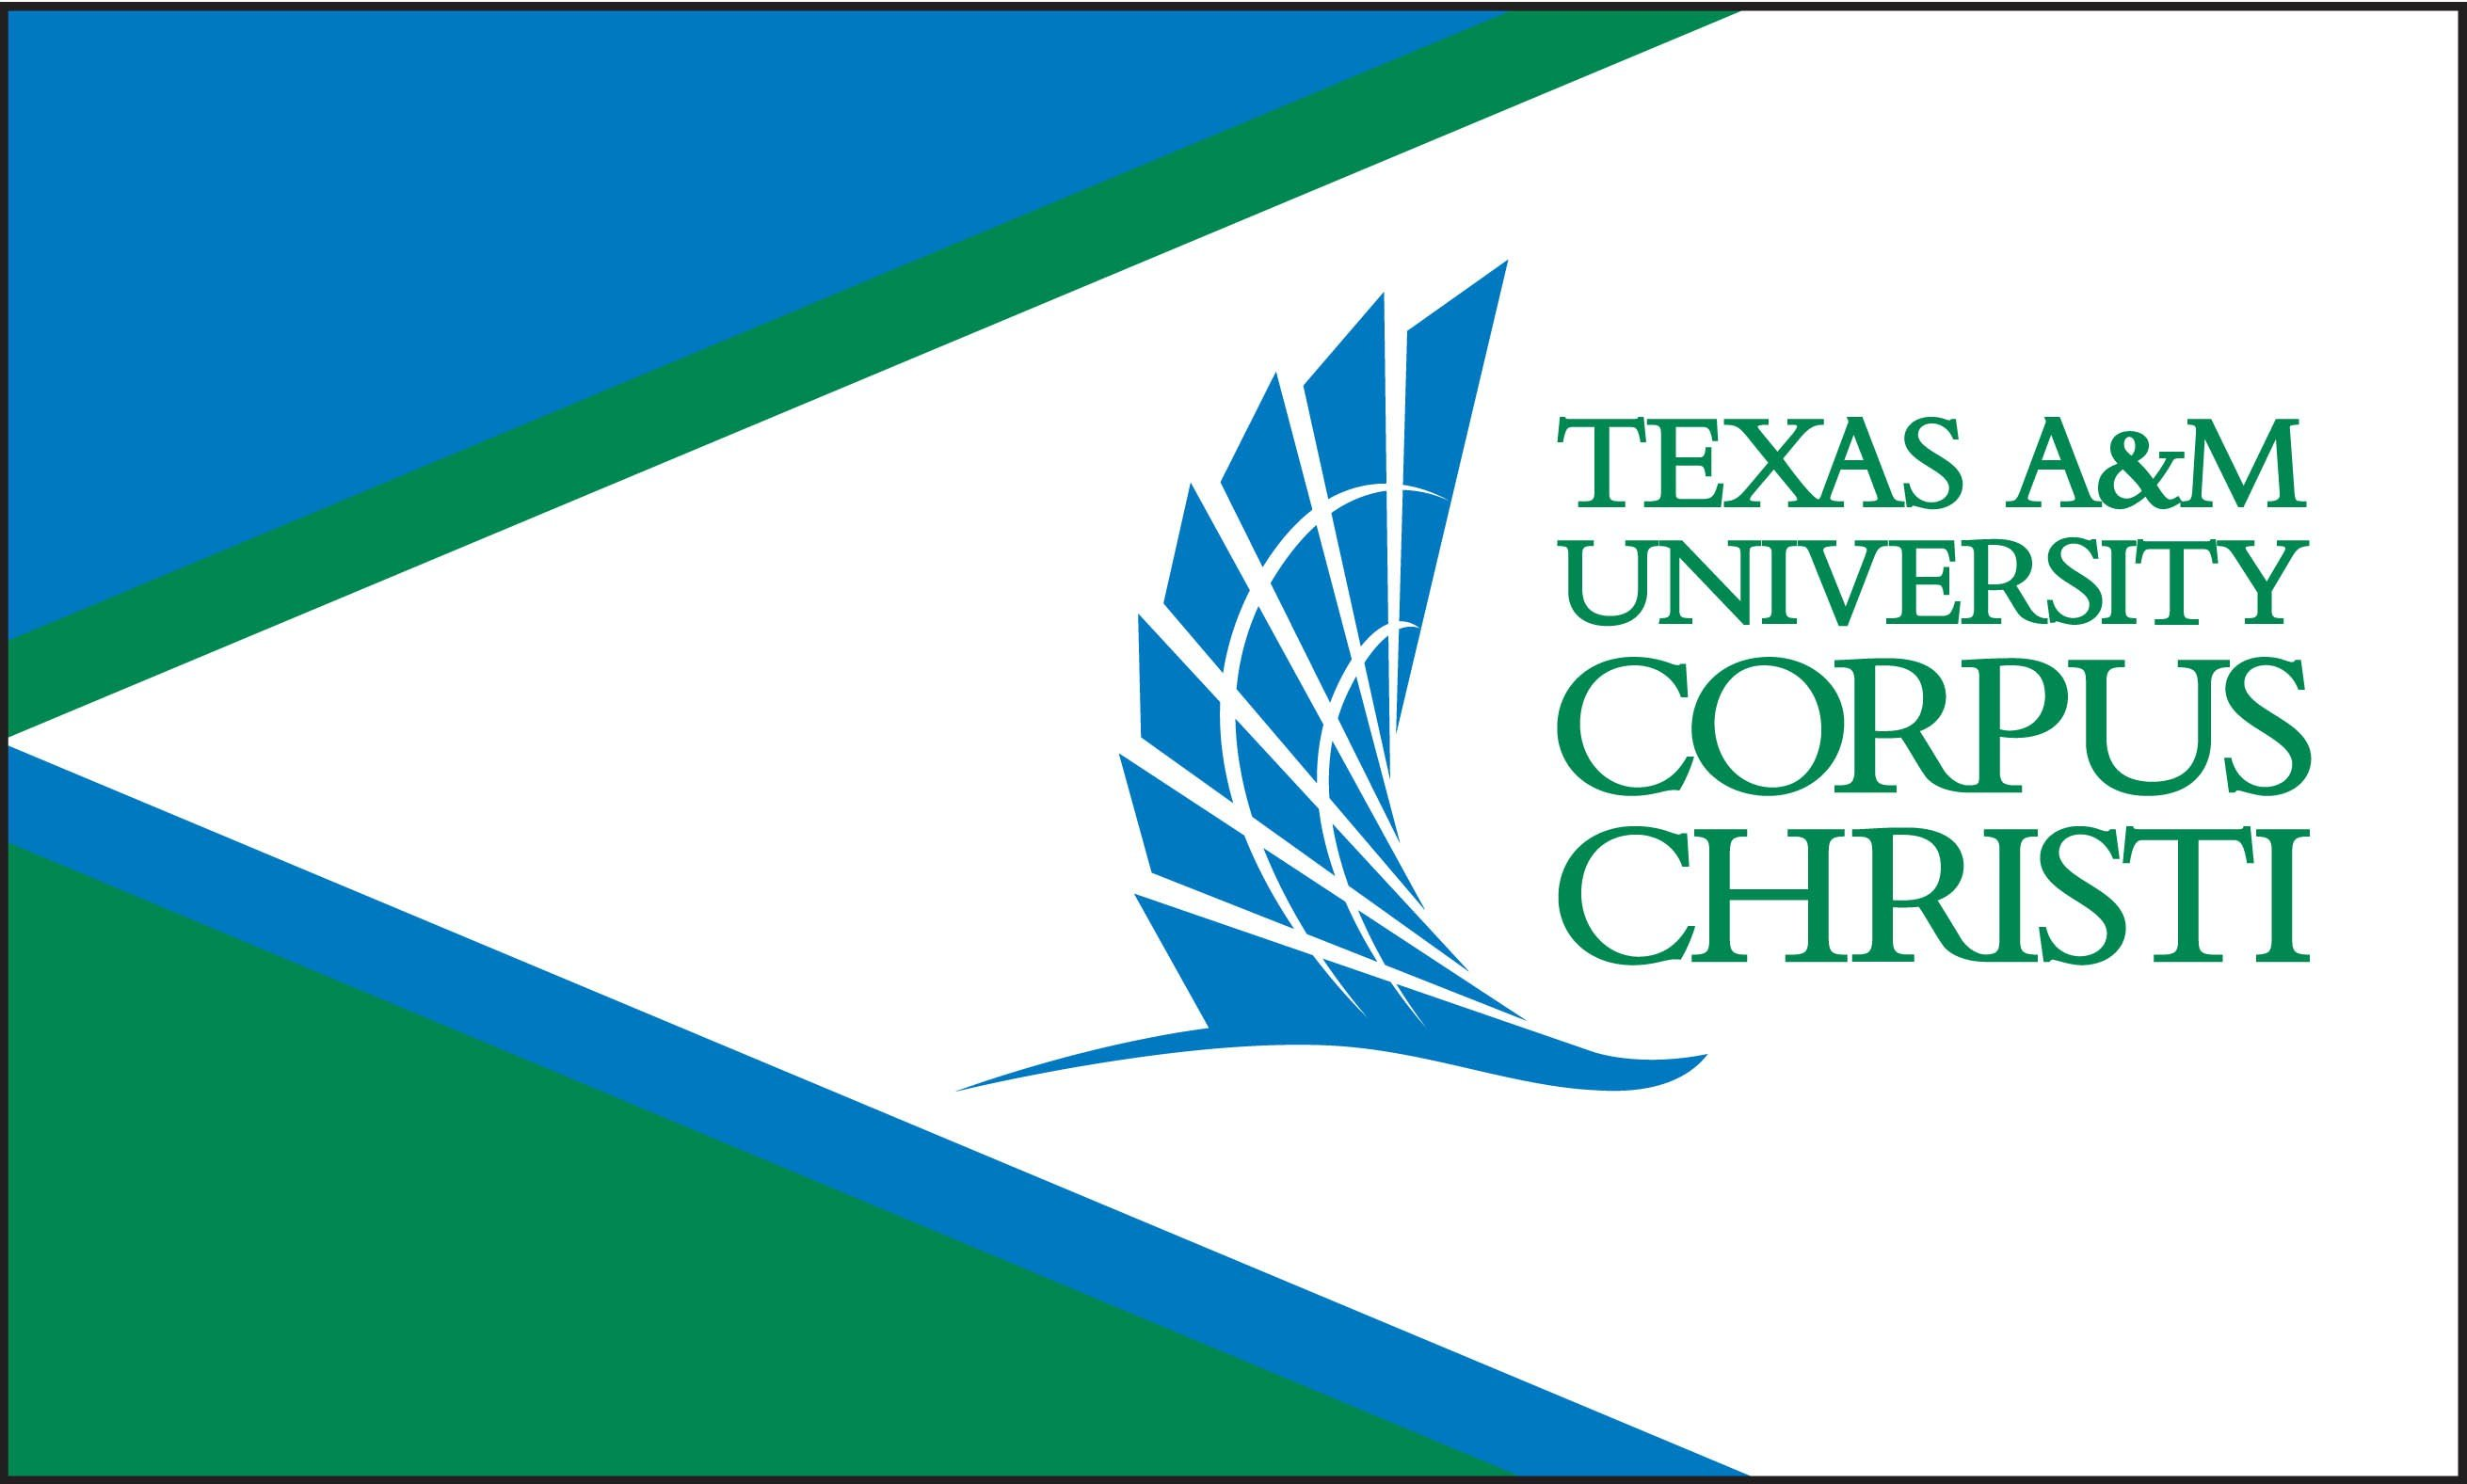 Could I get into Texas A&M Corpus Christi?